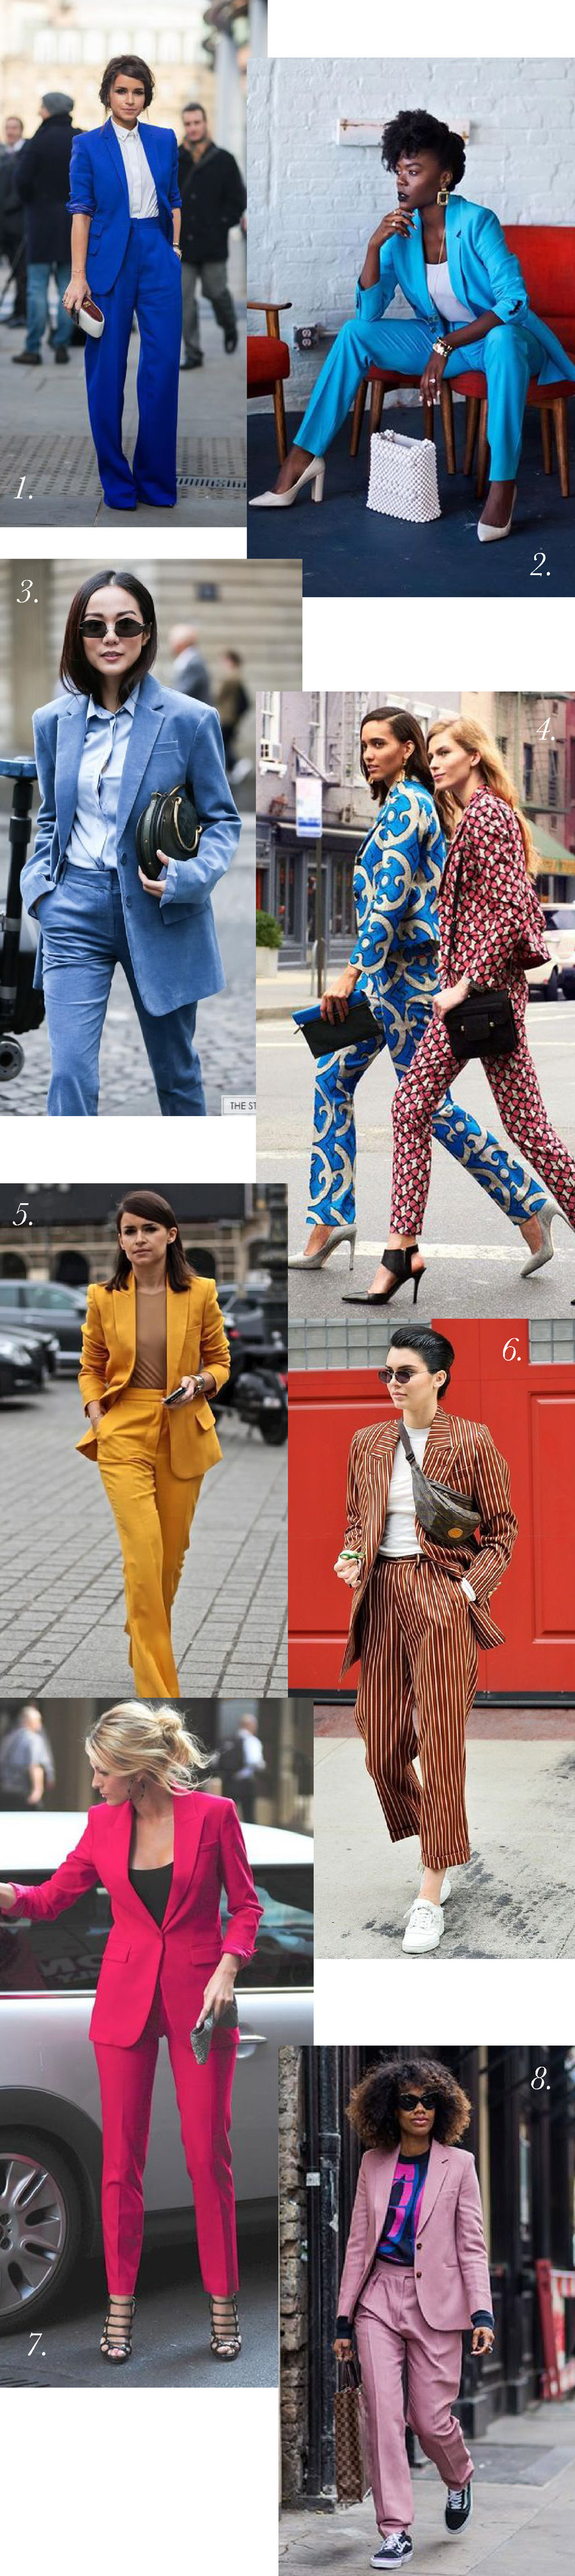 How to Style a Colourful suit // Blazer outfits ideas for Jasika Blazer from Closet Case Patterns